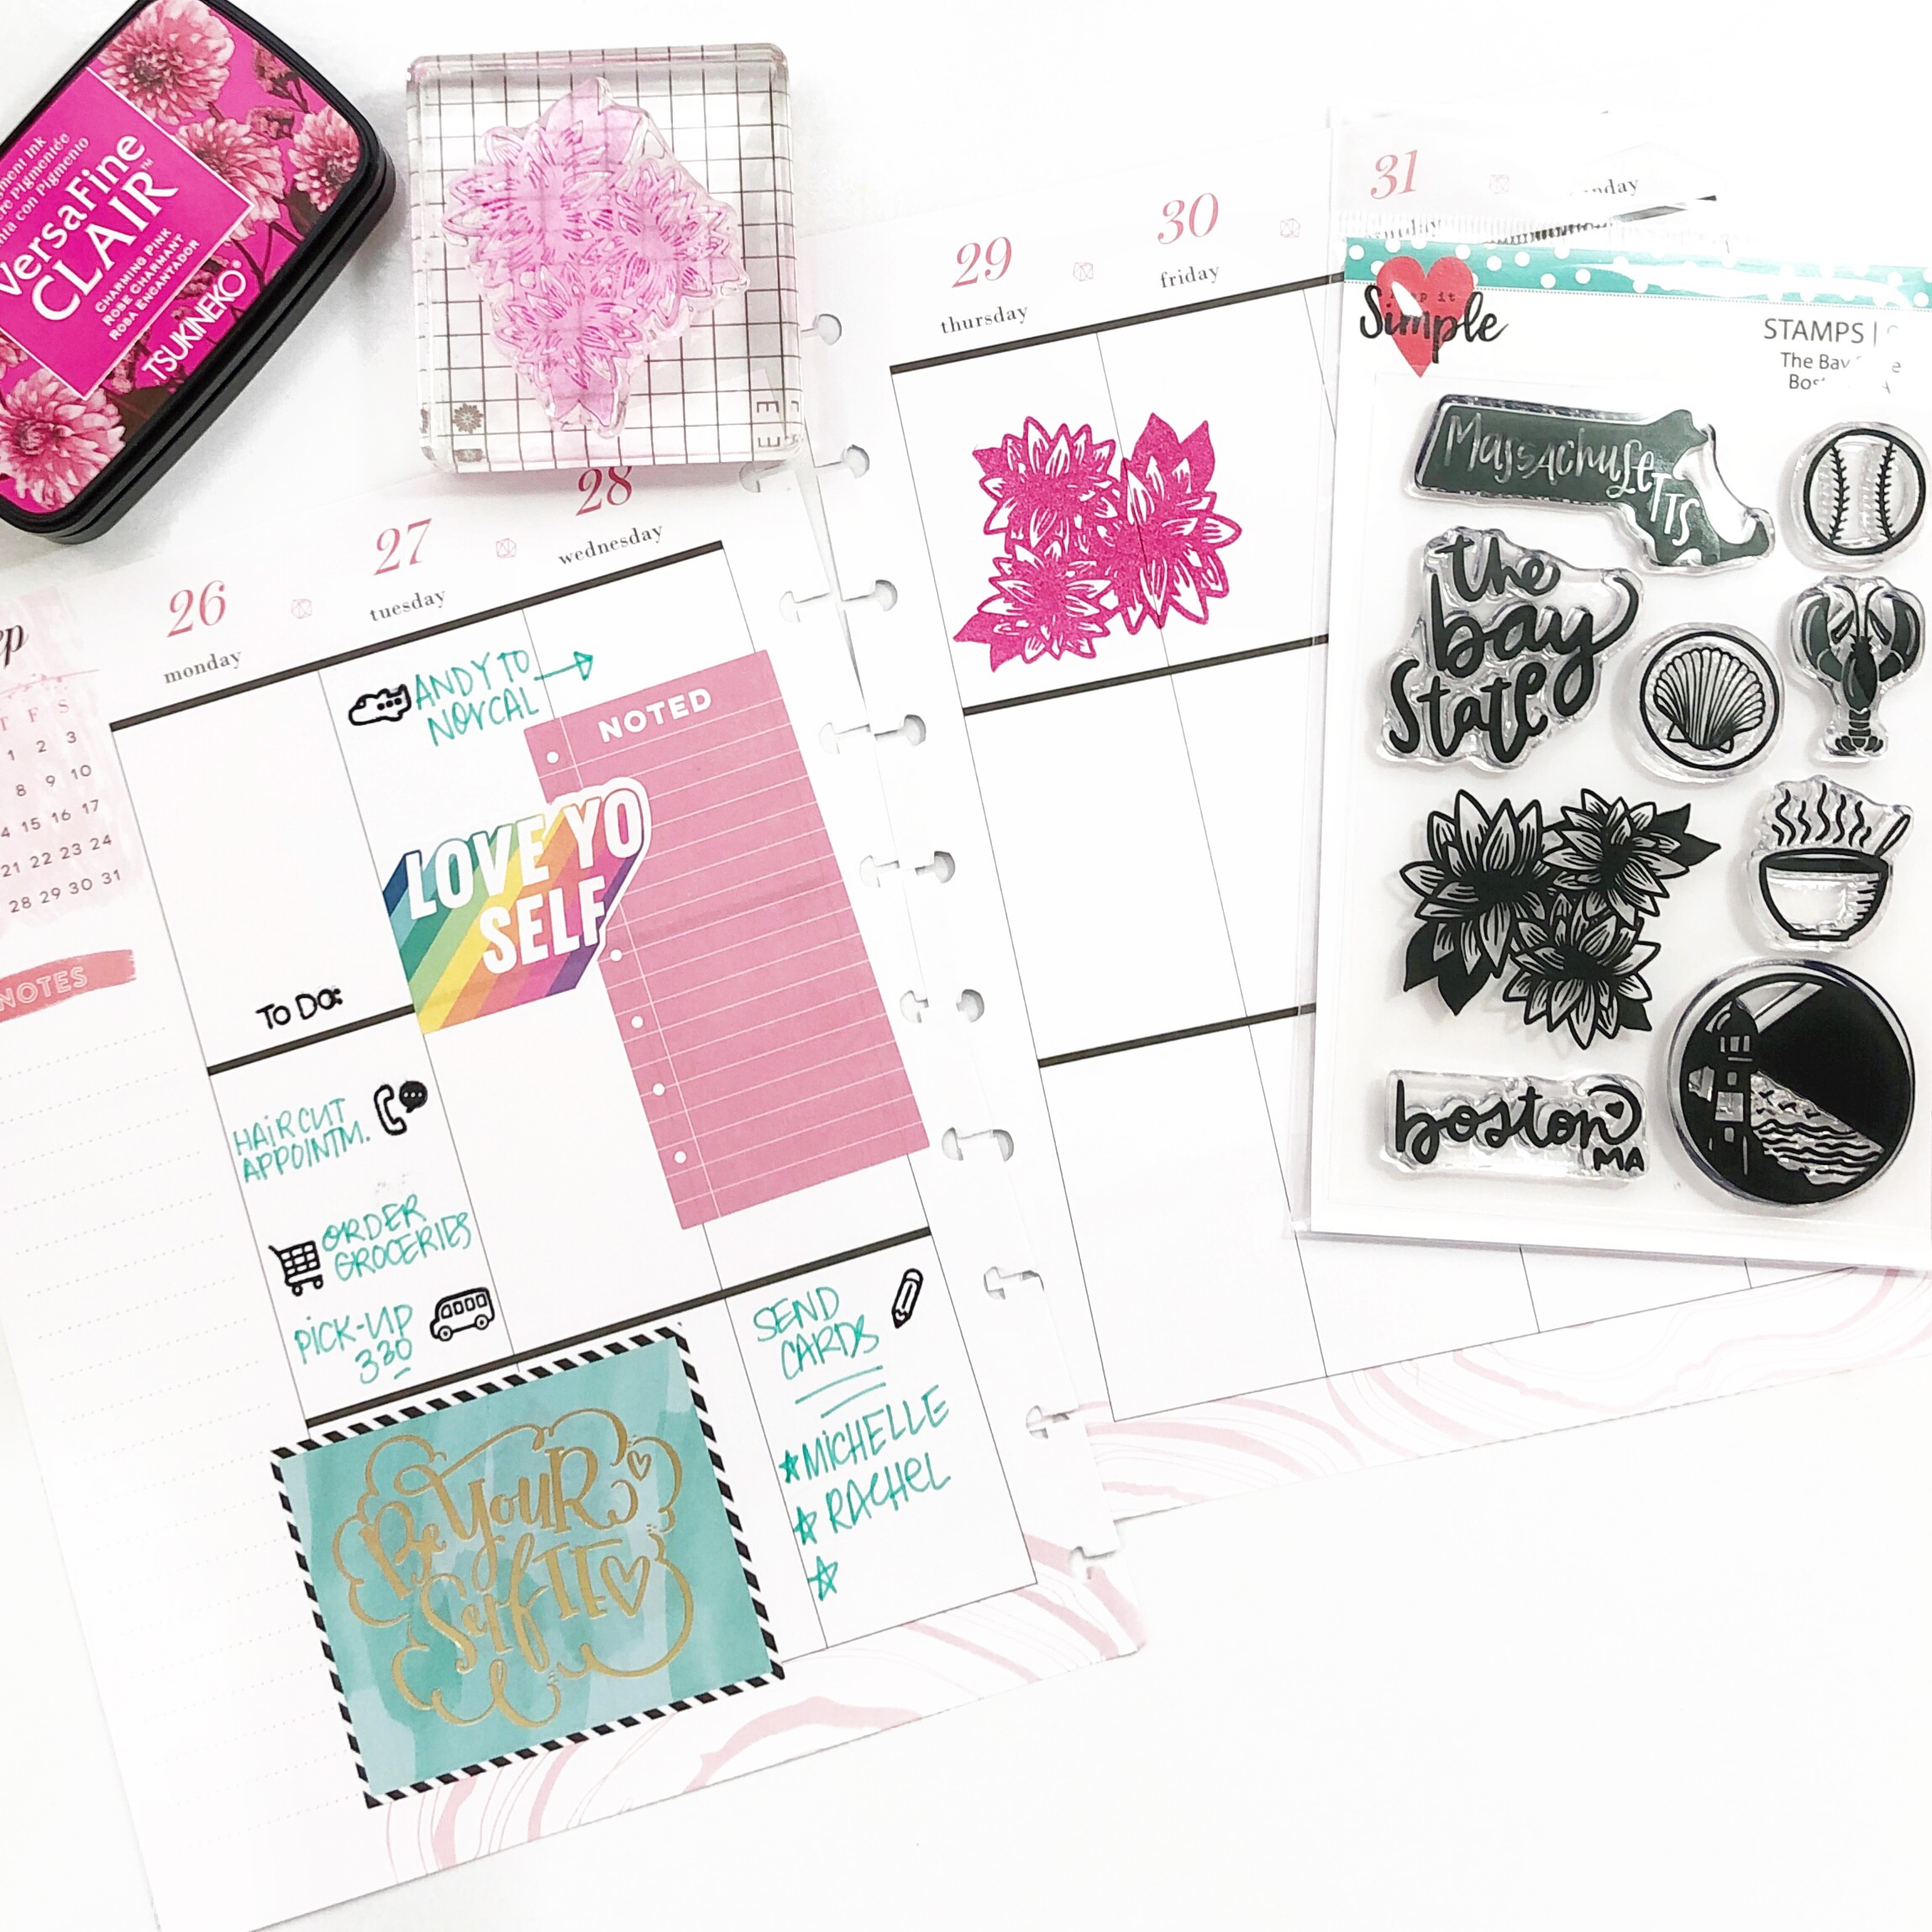 Planner Stamps Stamping and Stickers Functional and Decorative